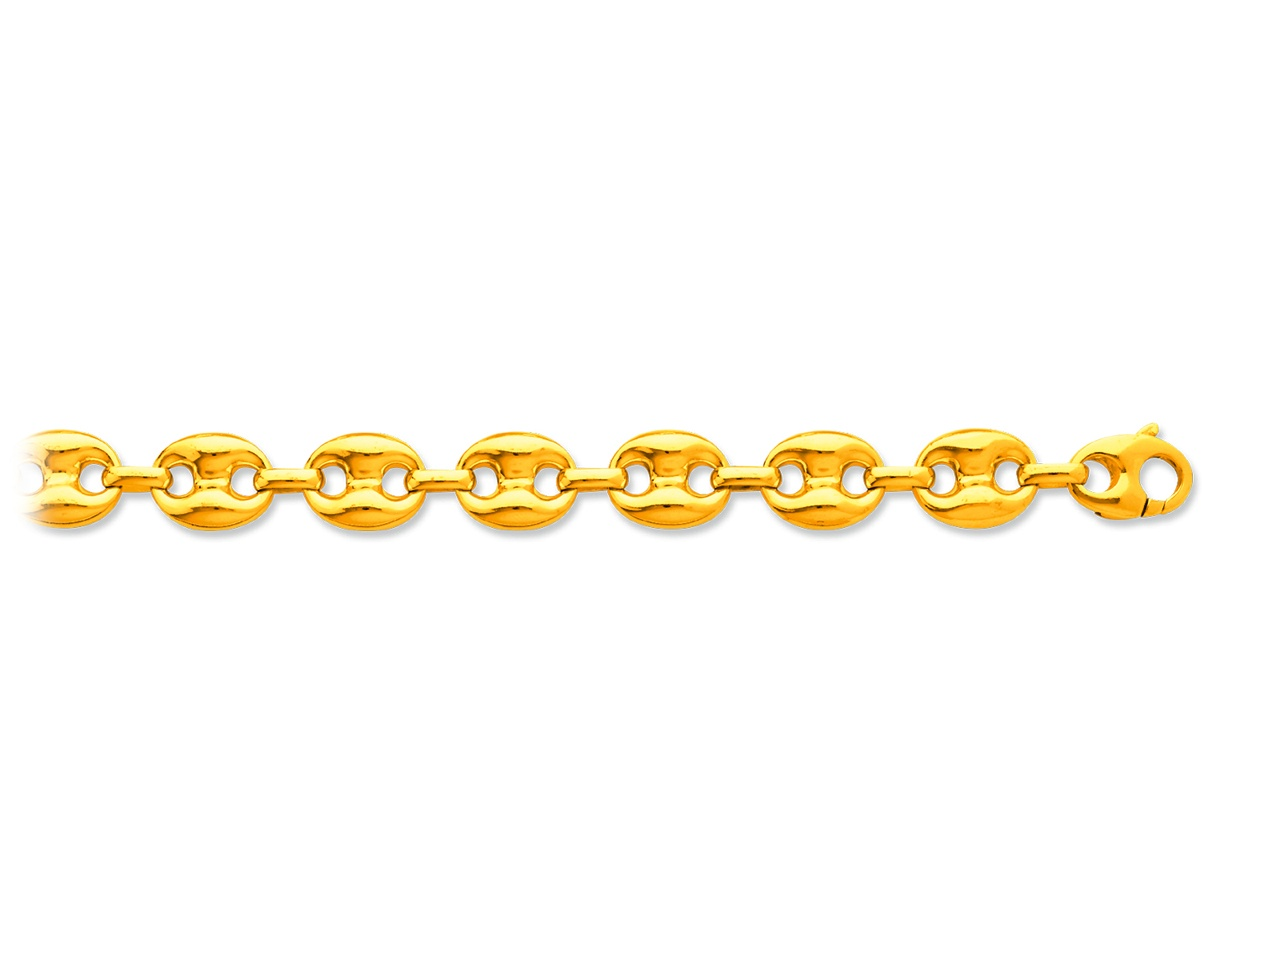 Collier maille grains de cafés creux, Or jaune 18k, 12,3 mm, 60 cm